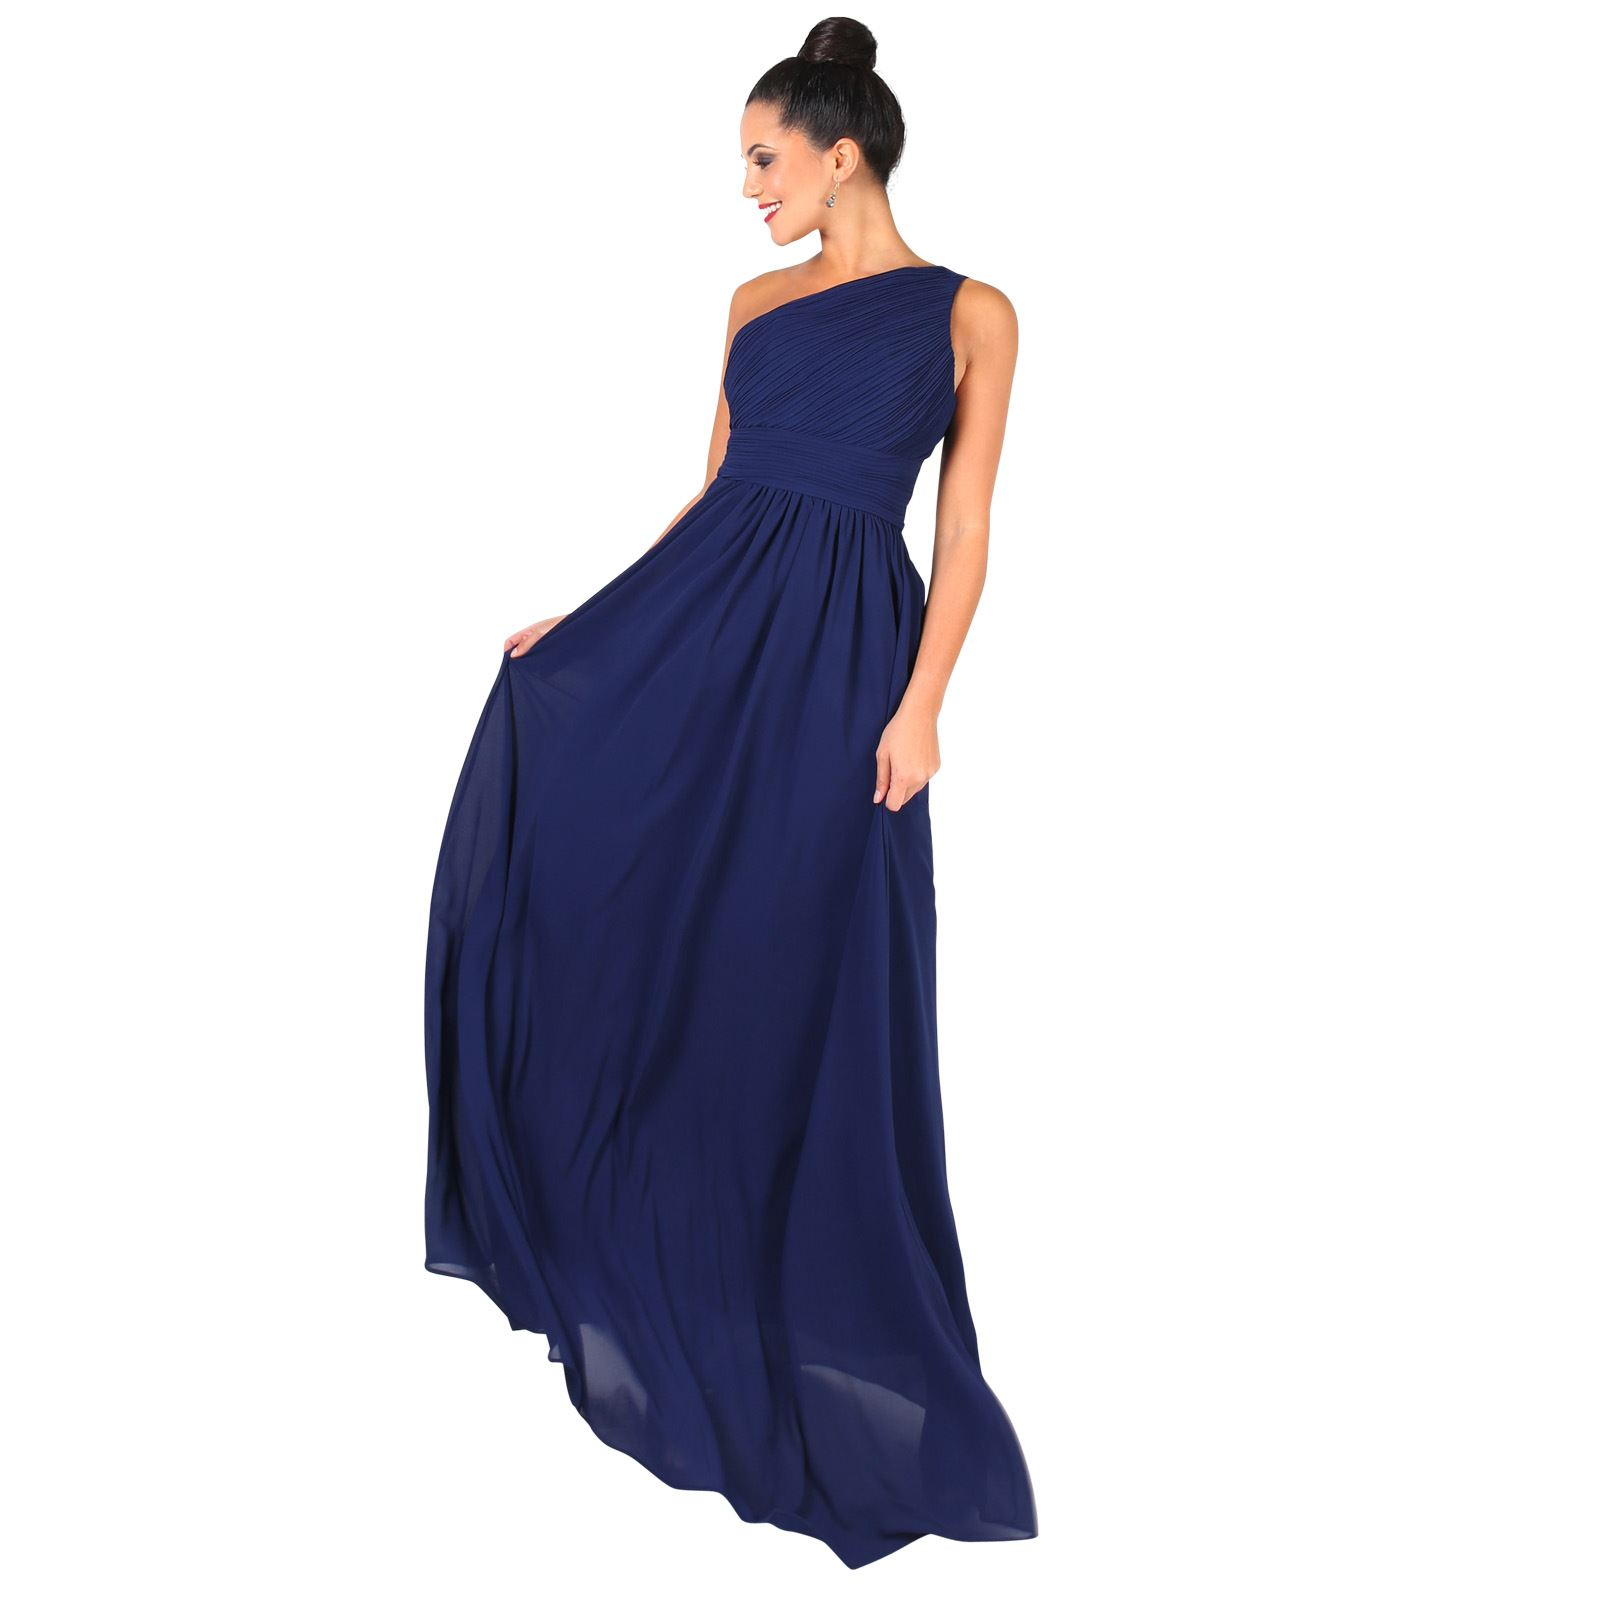 Femmes-Maxi-Robe-Ceremonie-Empire-Deesse-Encolure-Asymetrique-Soiree-Cocktail